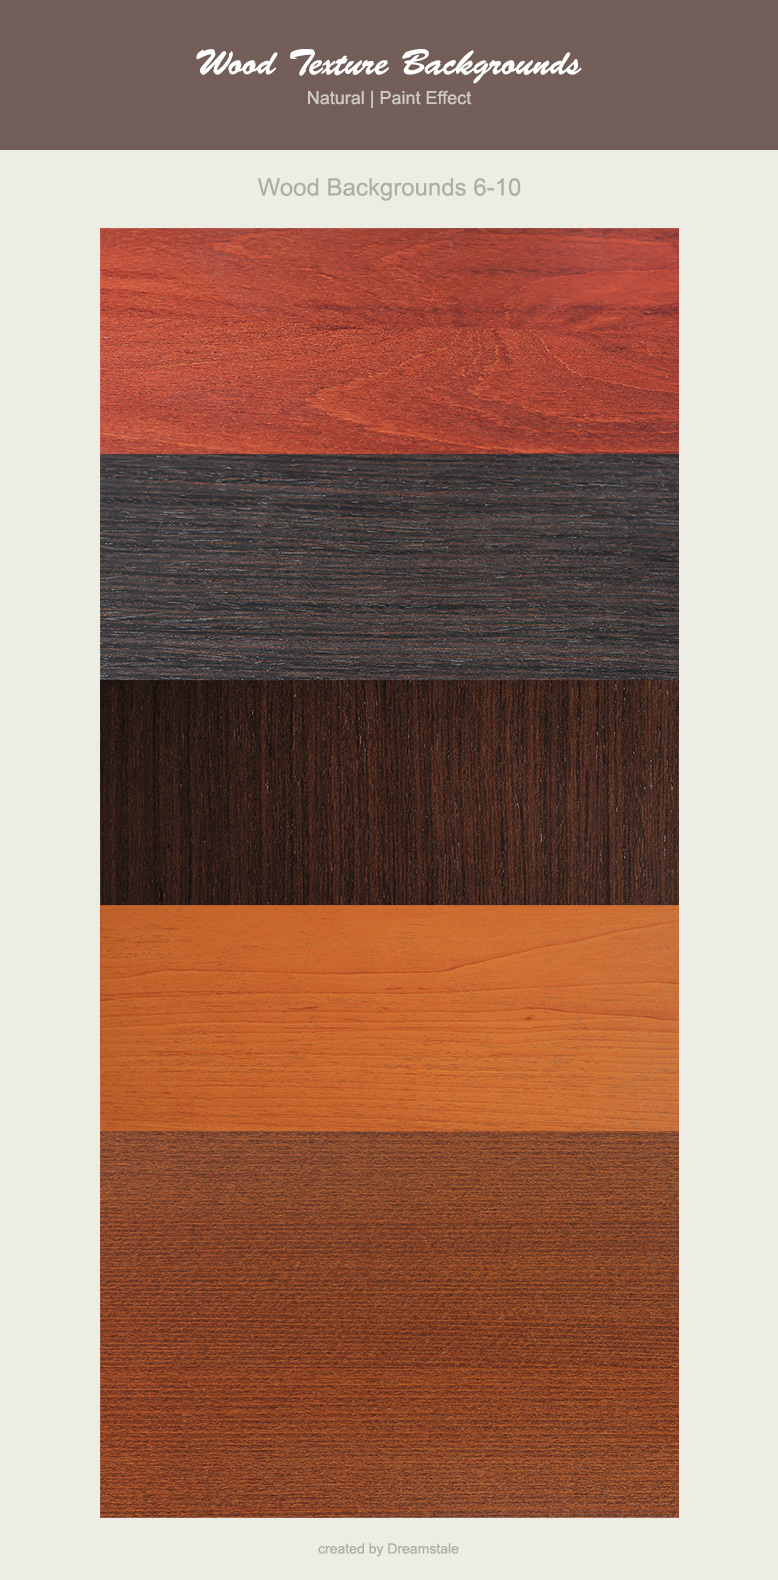 wood texture pattern backgrounds 6-10